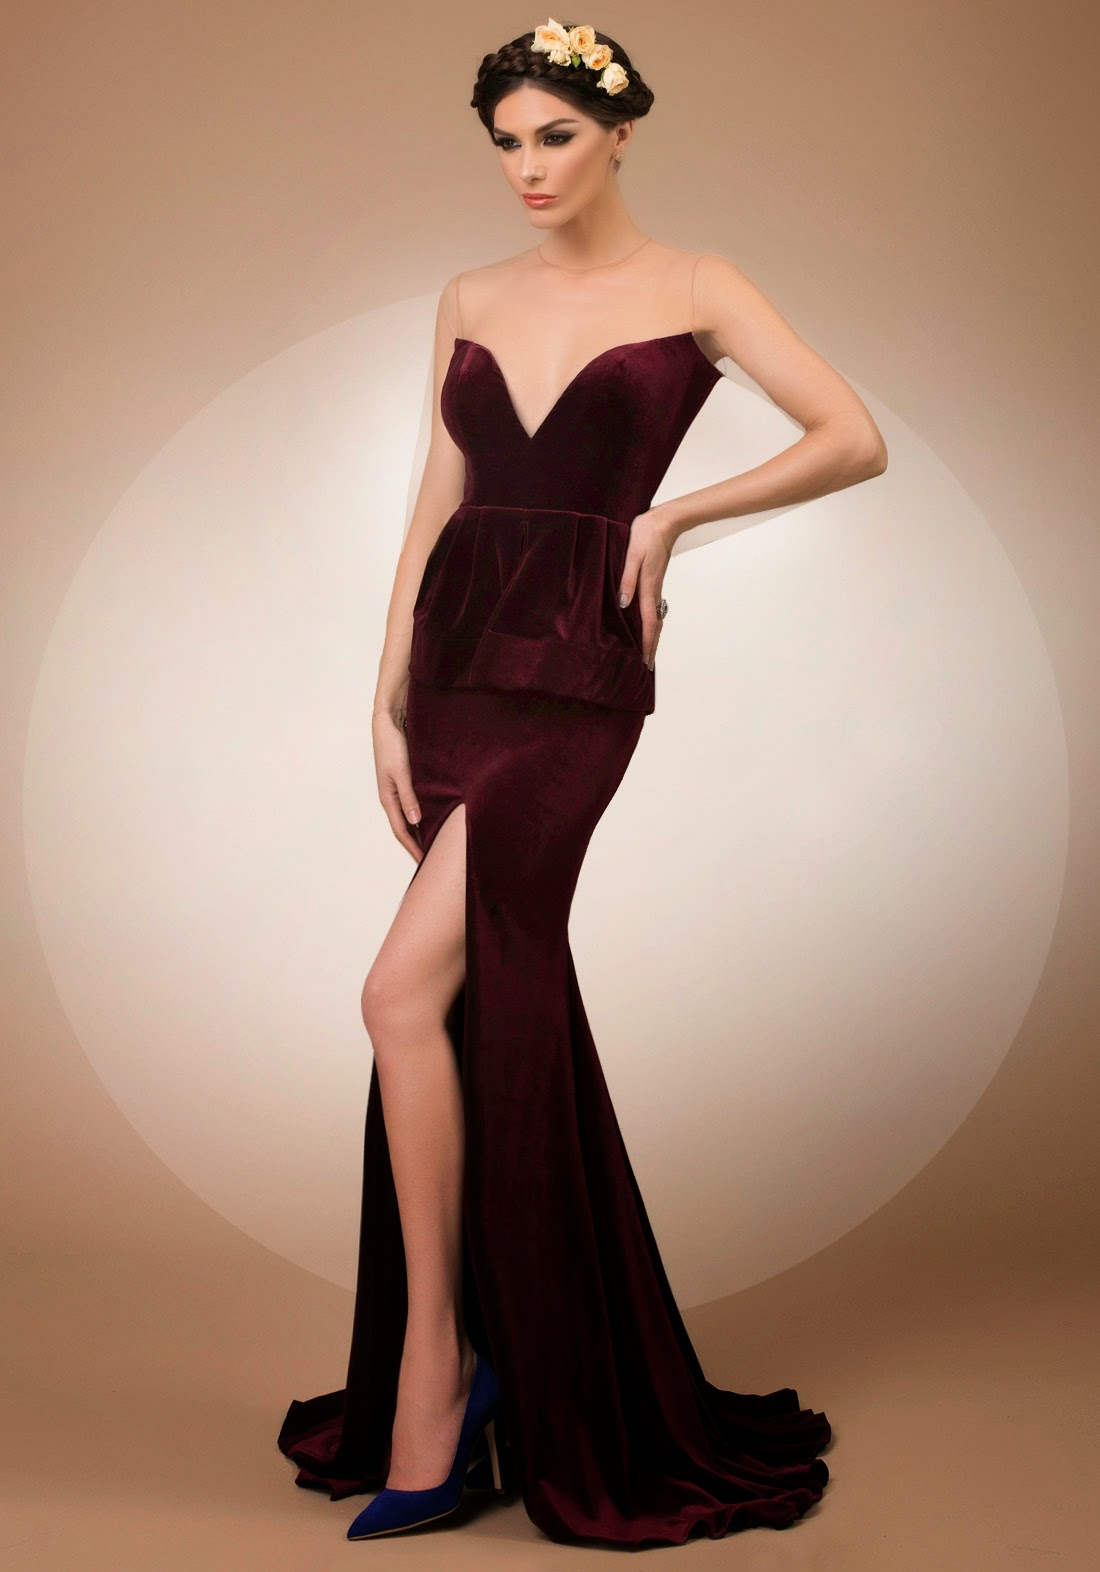 My Secret Admirer, mermaid velvet evening dress with portrait back, Bien Savvy My Secret collection